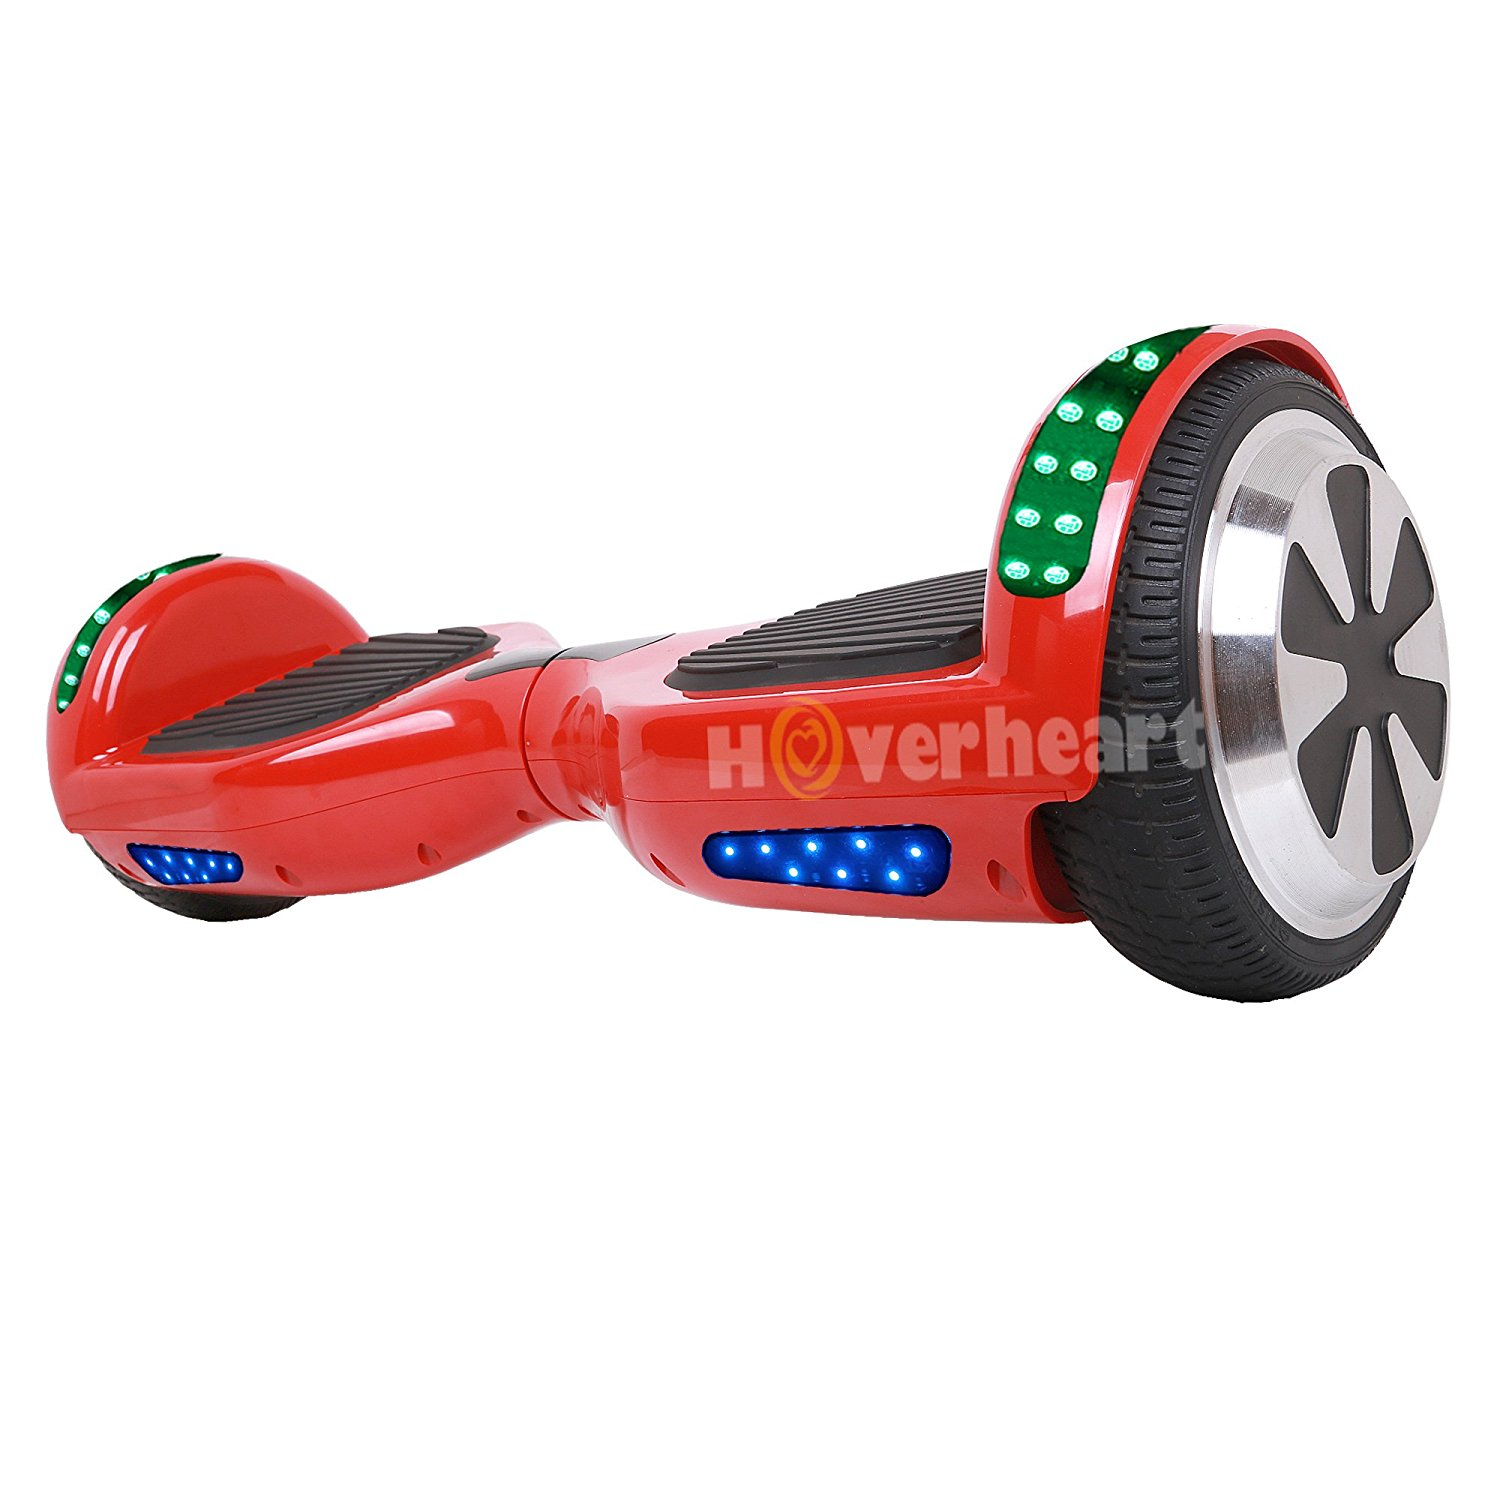 "Hoverboard Two-Wheel Self Balancing Electric Scooter 6.5"" UL 2272 Certified, Pink by"